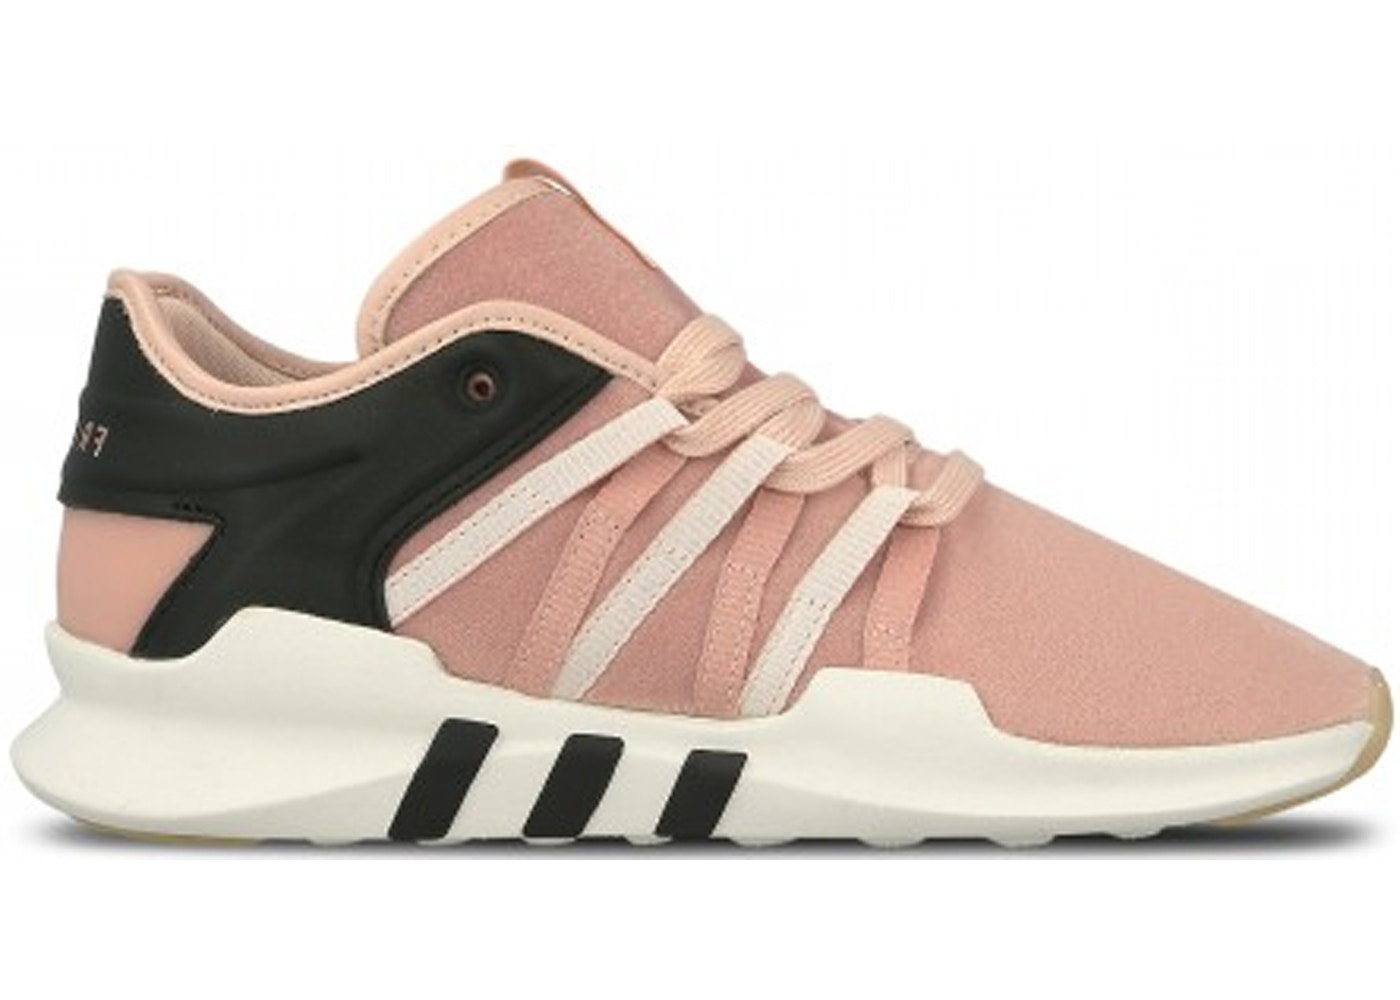 アディダス ADIDAS ピンク スニーカー 【 PINK EQT LACING ADV OVERKILL X FRUITION VAPOUR W ICE CLEAR WHITE 】 送料無料